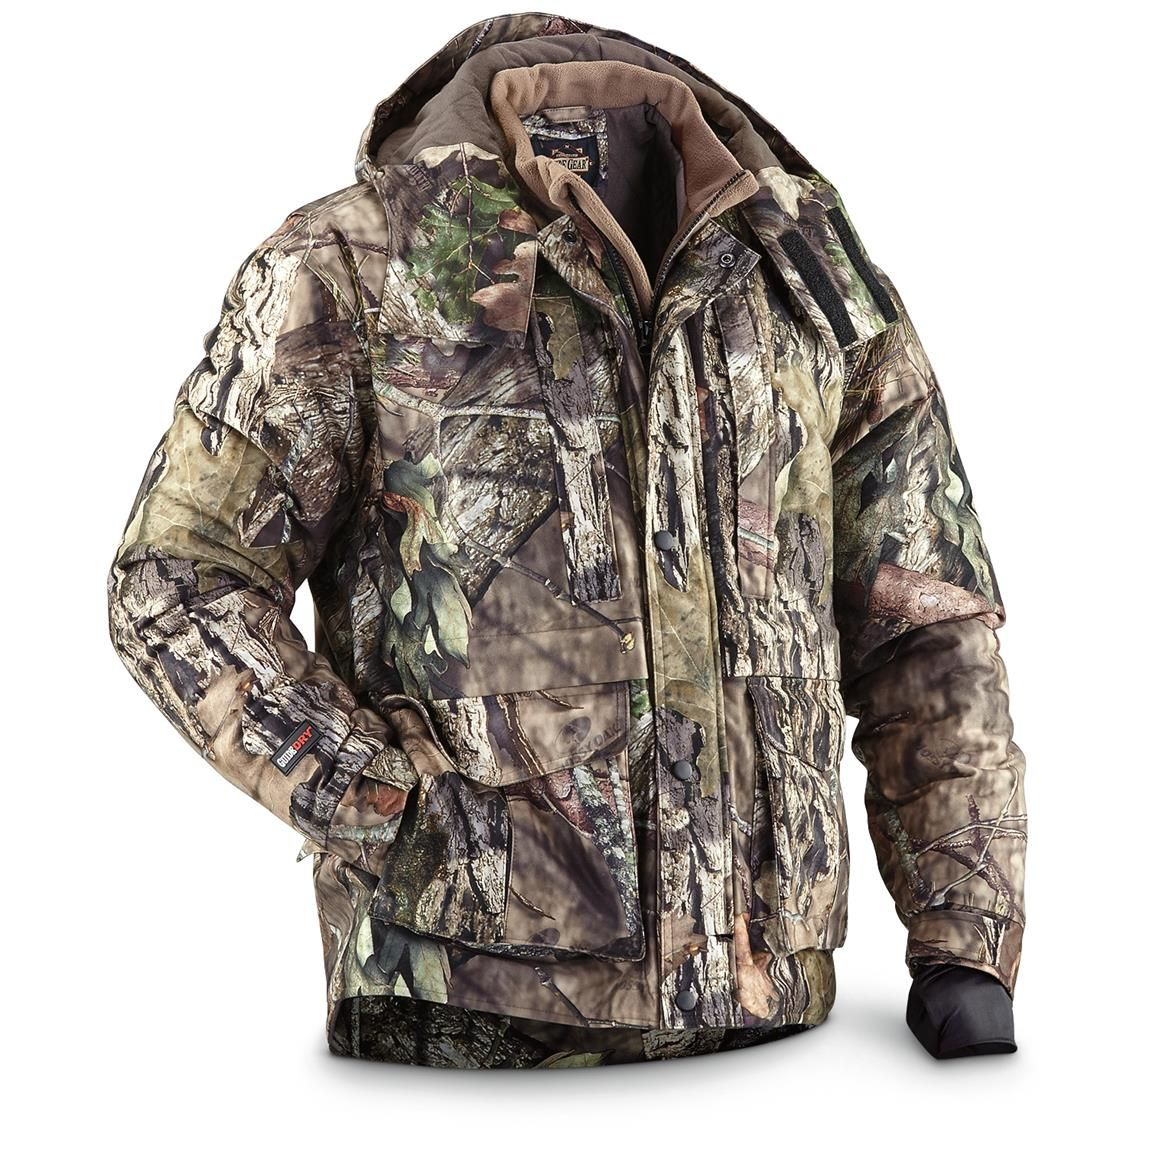 54882955cd5b3 Guide Gear Men's Hunting Parka in Mossy Oak Break-Up Country. Waterproof,  breathable, insulated... one of the world's BEST VALUES in outdoor gear!